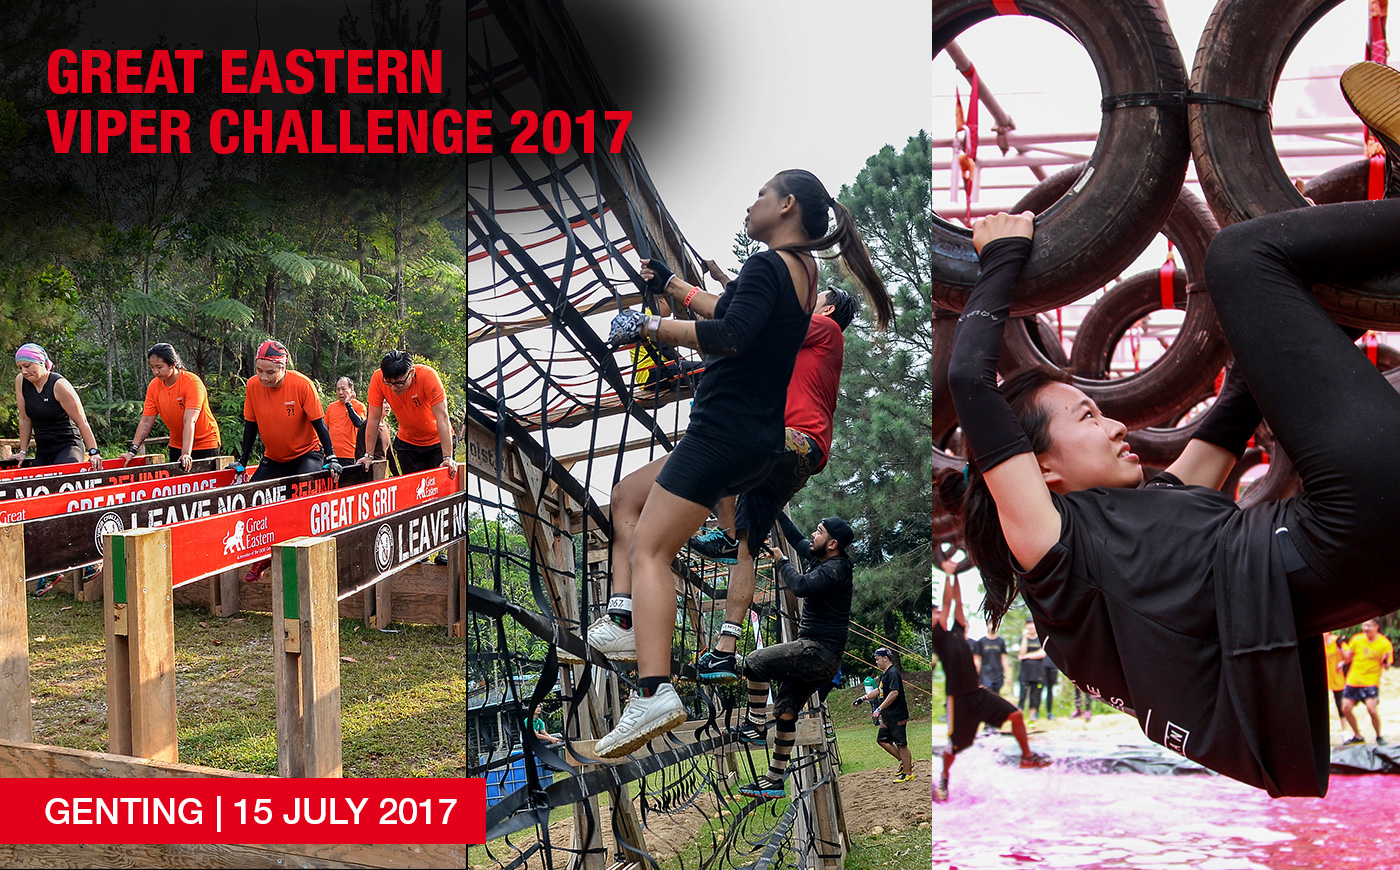 Great Eastern Viper Challenge 2017 Genting